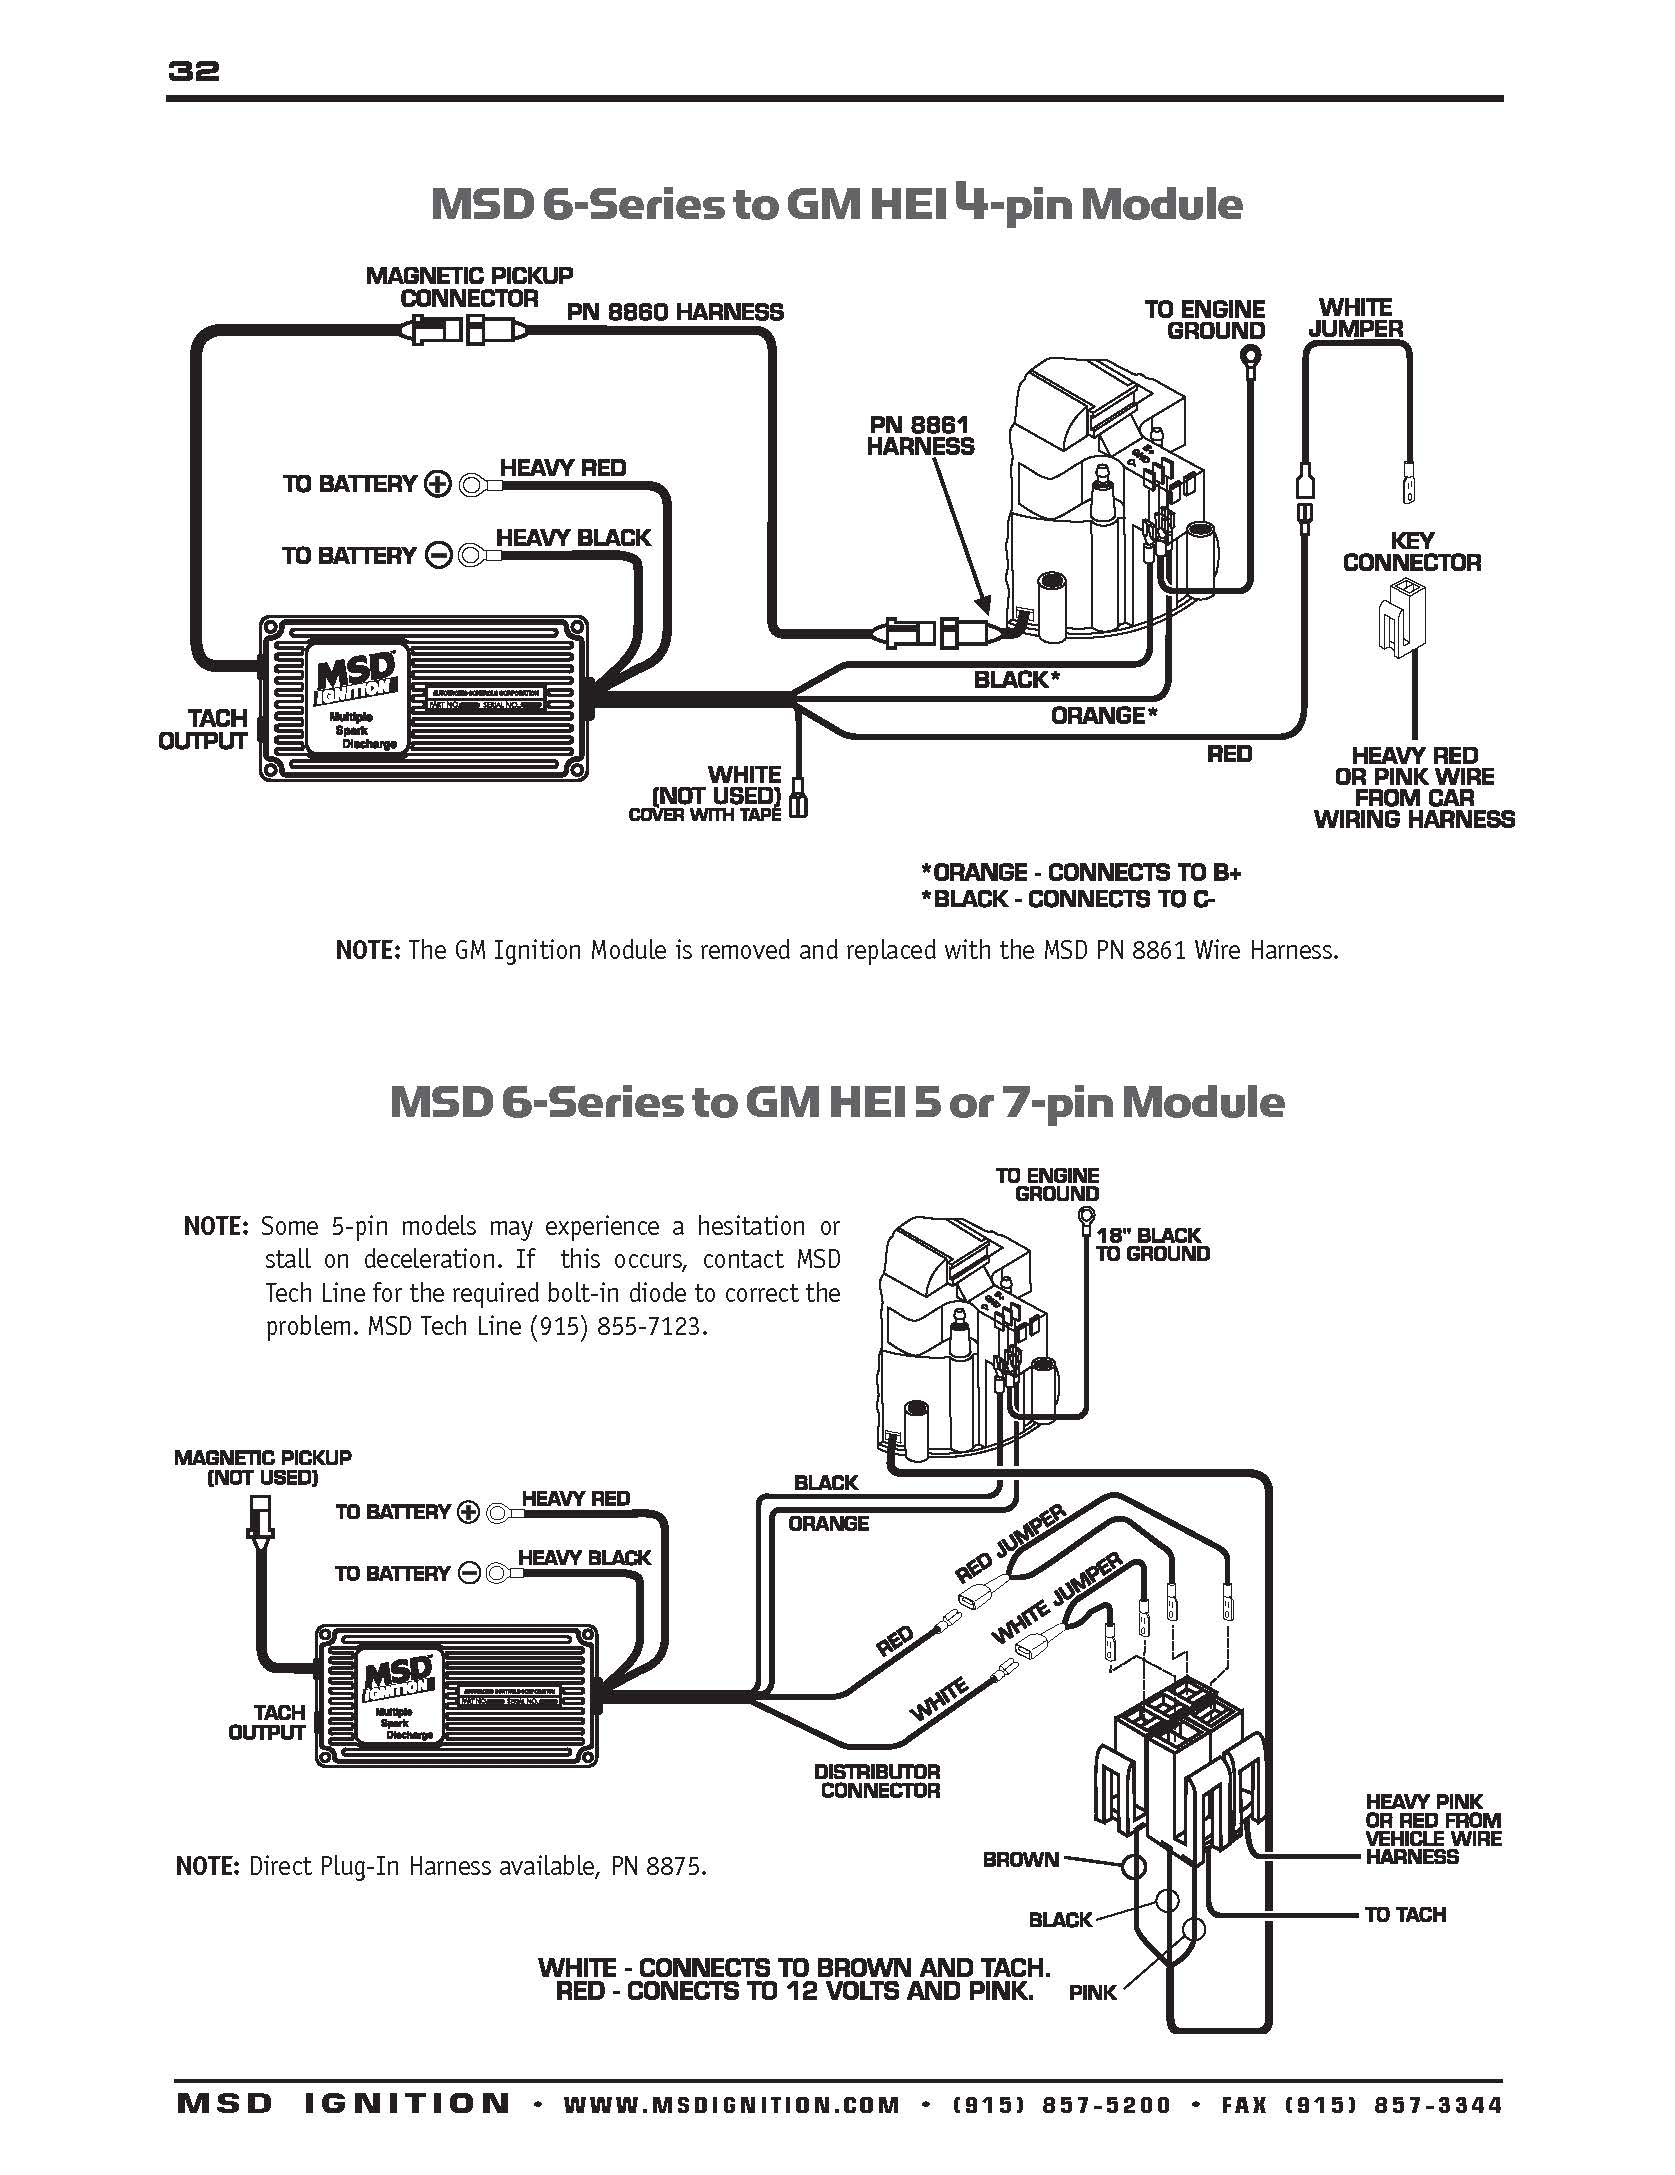 Msd 6al 6420 Wiring Diagram Ford | Wiring Diagram Mallory Ignition Msd Wiring Diagram on typical ignition system diagram, msd ignition installation, msd mounting, msd 2 step wiring-diagram, msd ignition system, msd 7al box diagram, meziere wiring diagram, msd ignition coil, ford alternator wiring diagram, msd hei wiring-diagram, auto meter wiring diagram, lokar wiring diagram, pertronix wiring diagram, painless wiring wiring diagram, msd ignition connector, taylor wiring diagram, nos wiring diagram, smittybilt wiring diagram, msd ford wiring diagrams, msd 6a wiring-diagram,